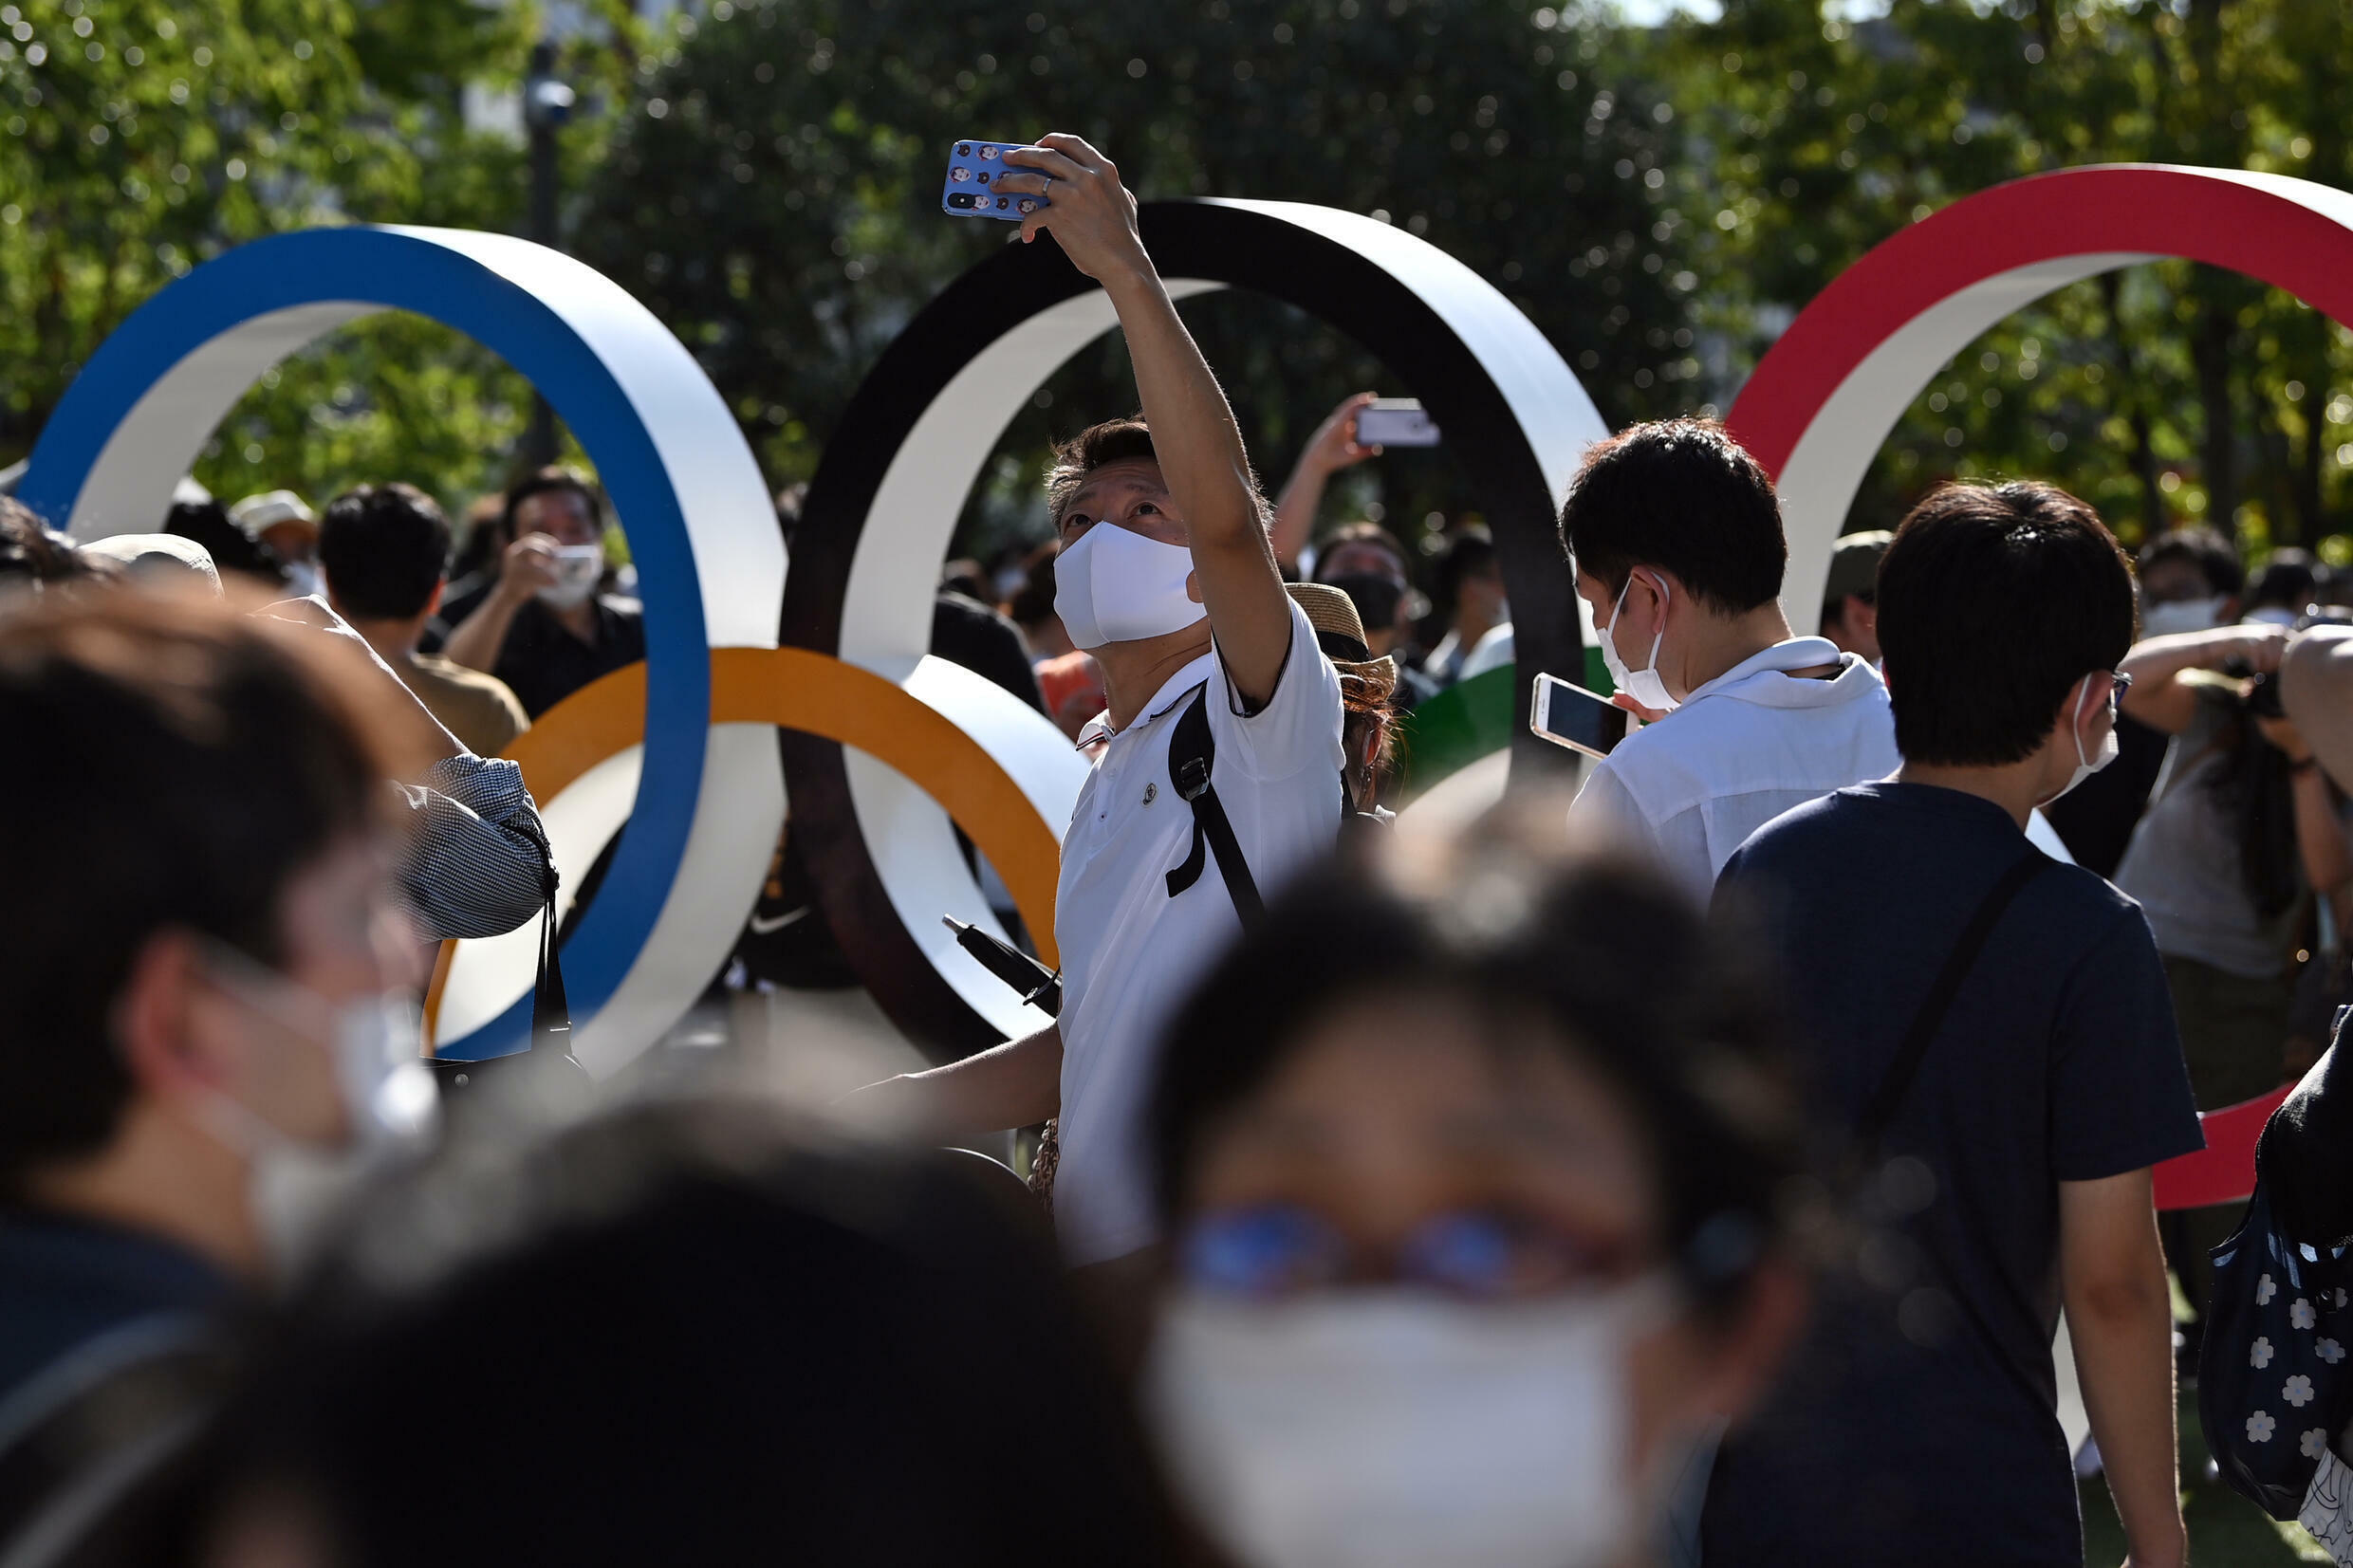 Hundreds of people gathered at the Olympic Stadium before the opening ceremony in Tokyo